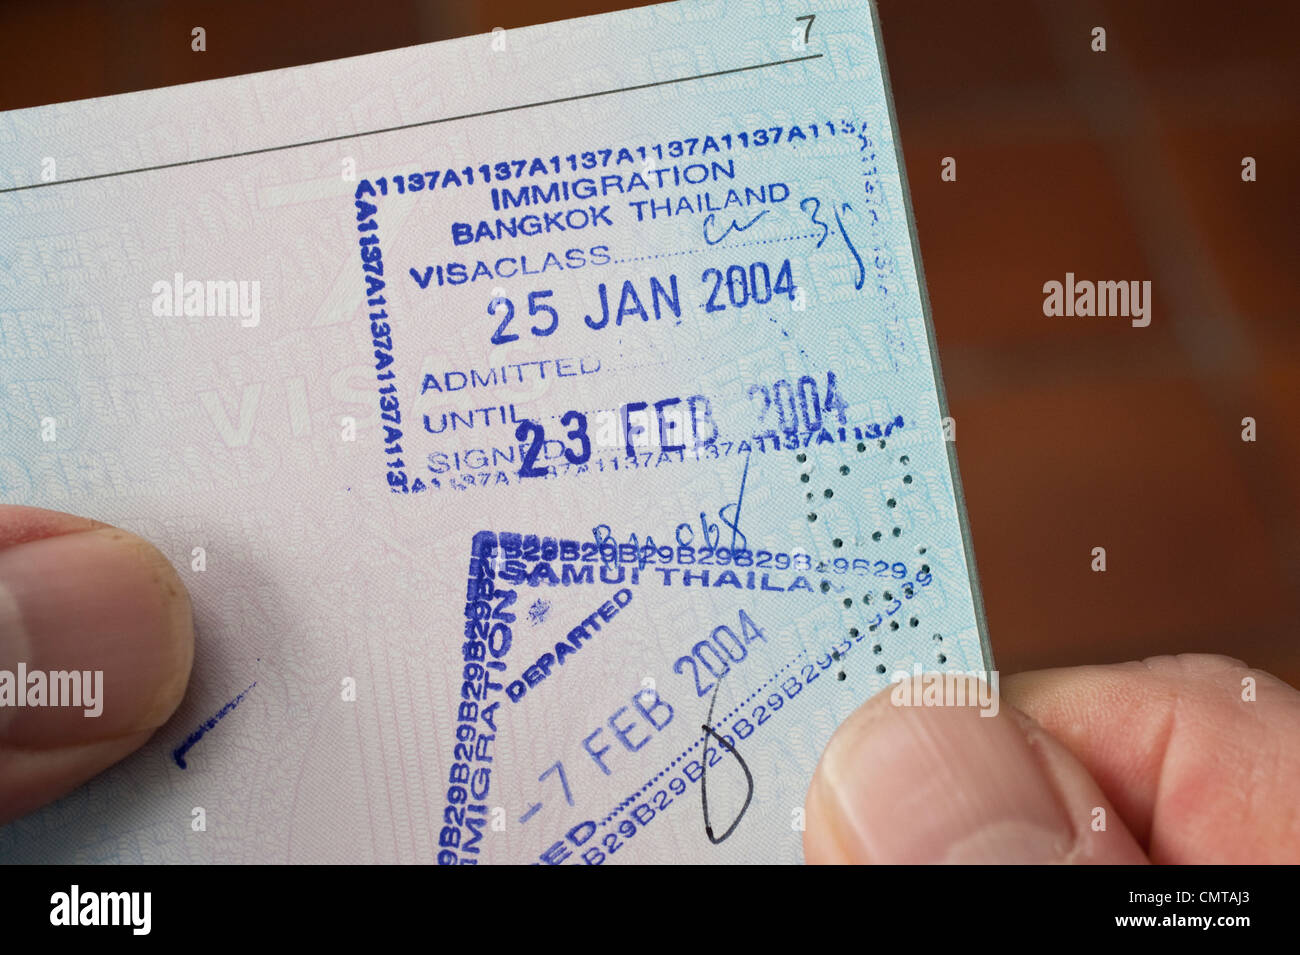 Entry and exit visa stamps of Thailand on a page in a passport - Stock Image